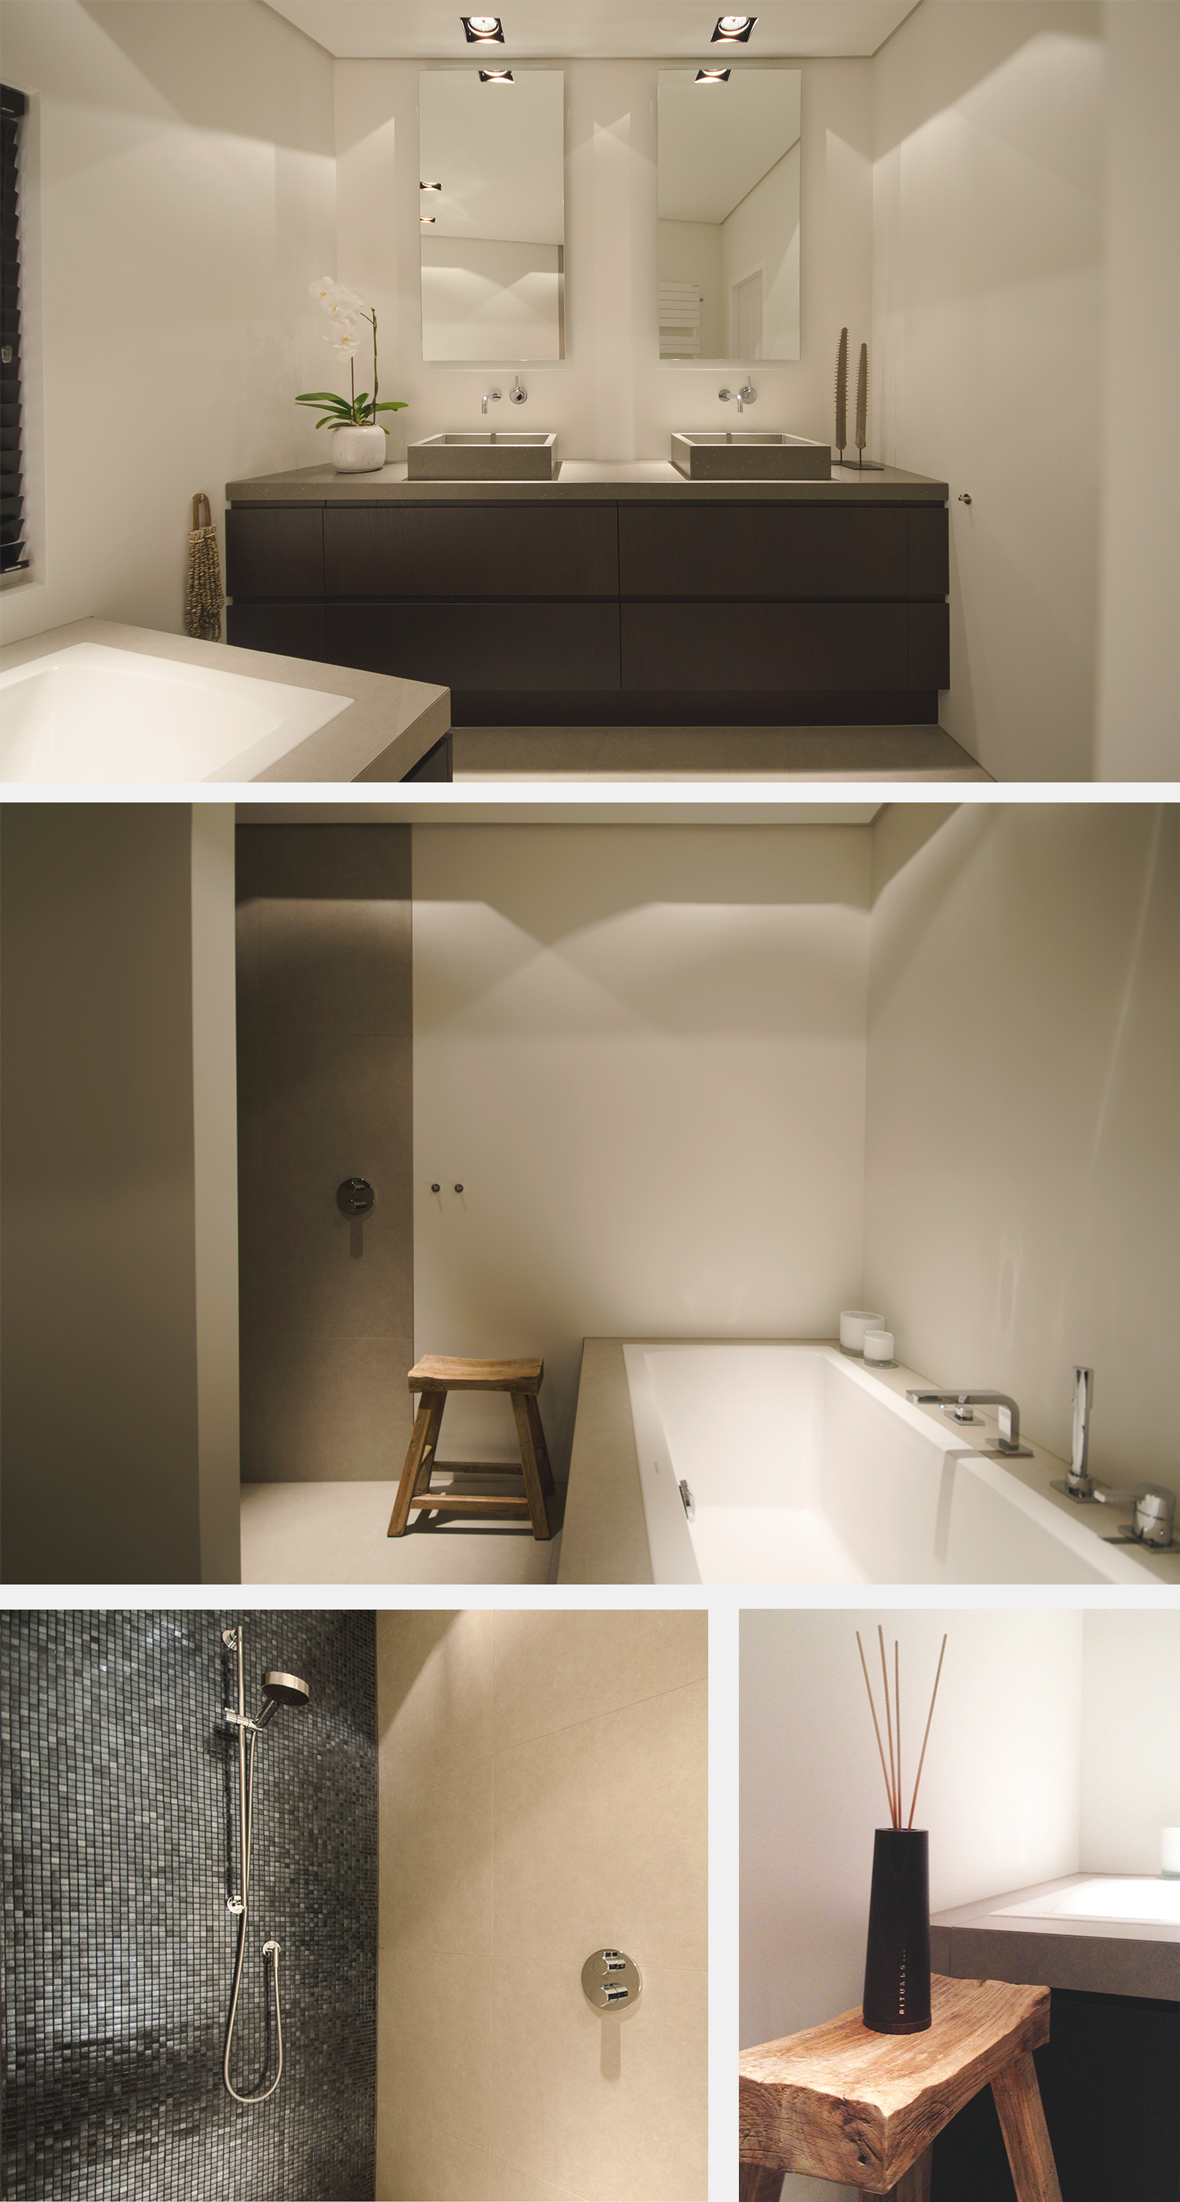 Interieurontwerp woonhuis dorst grego design - Lay outs badkamer ...